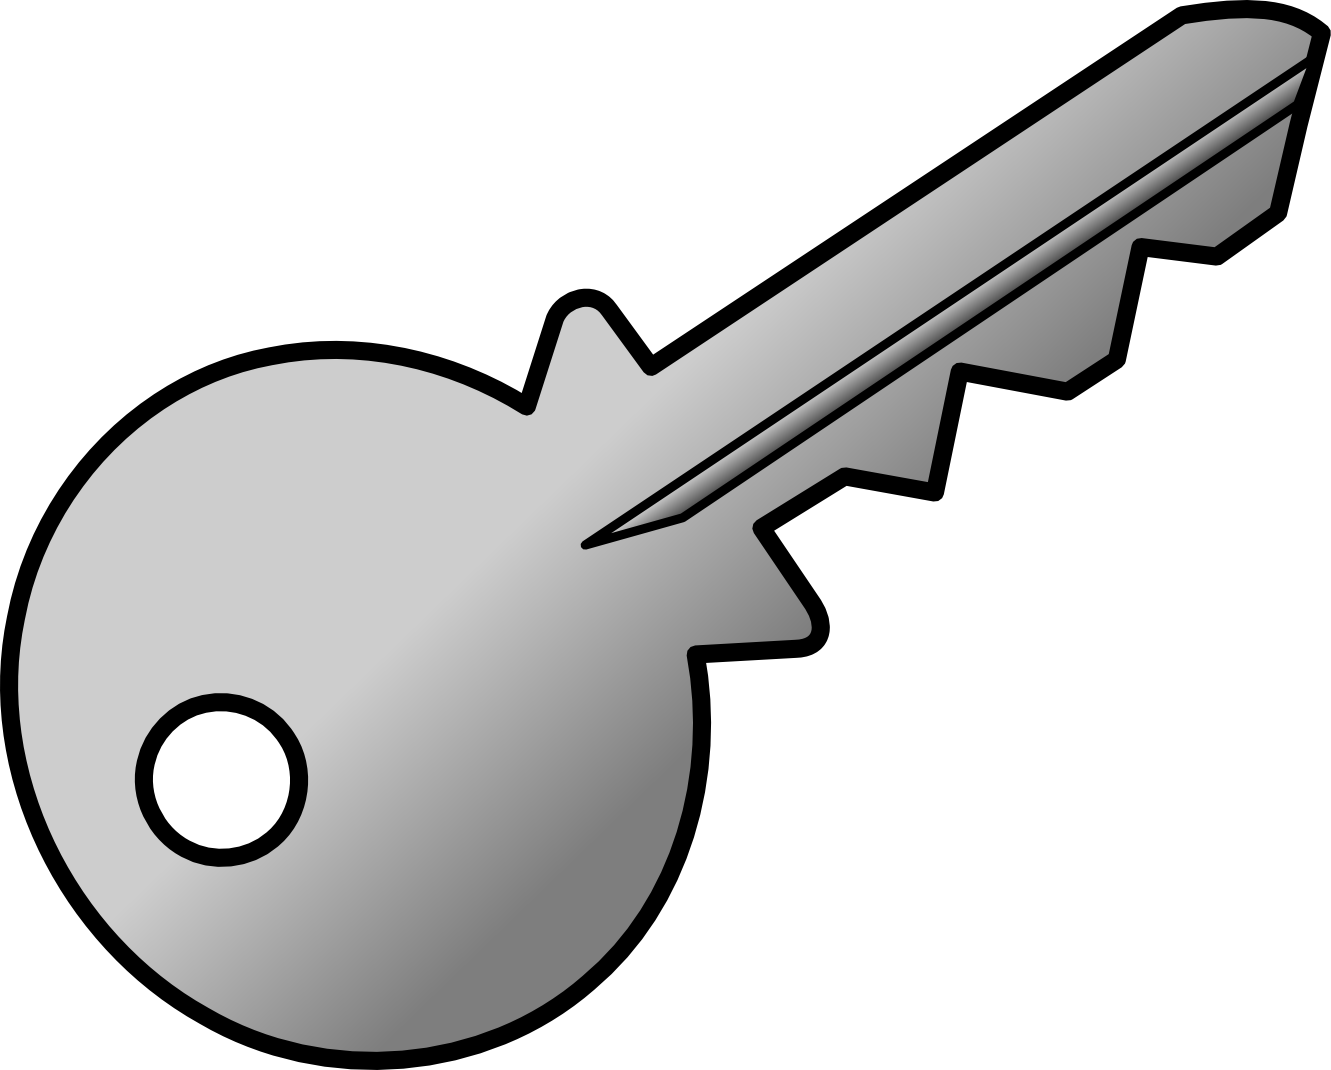 Car Key Images - Cliparts.co